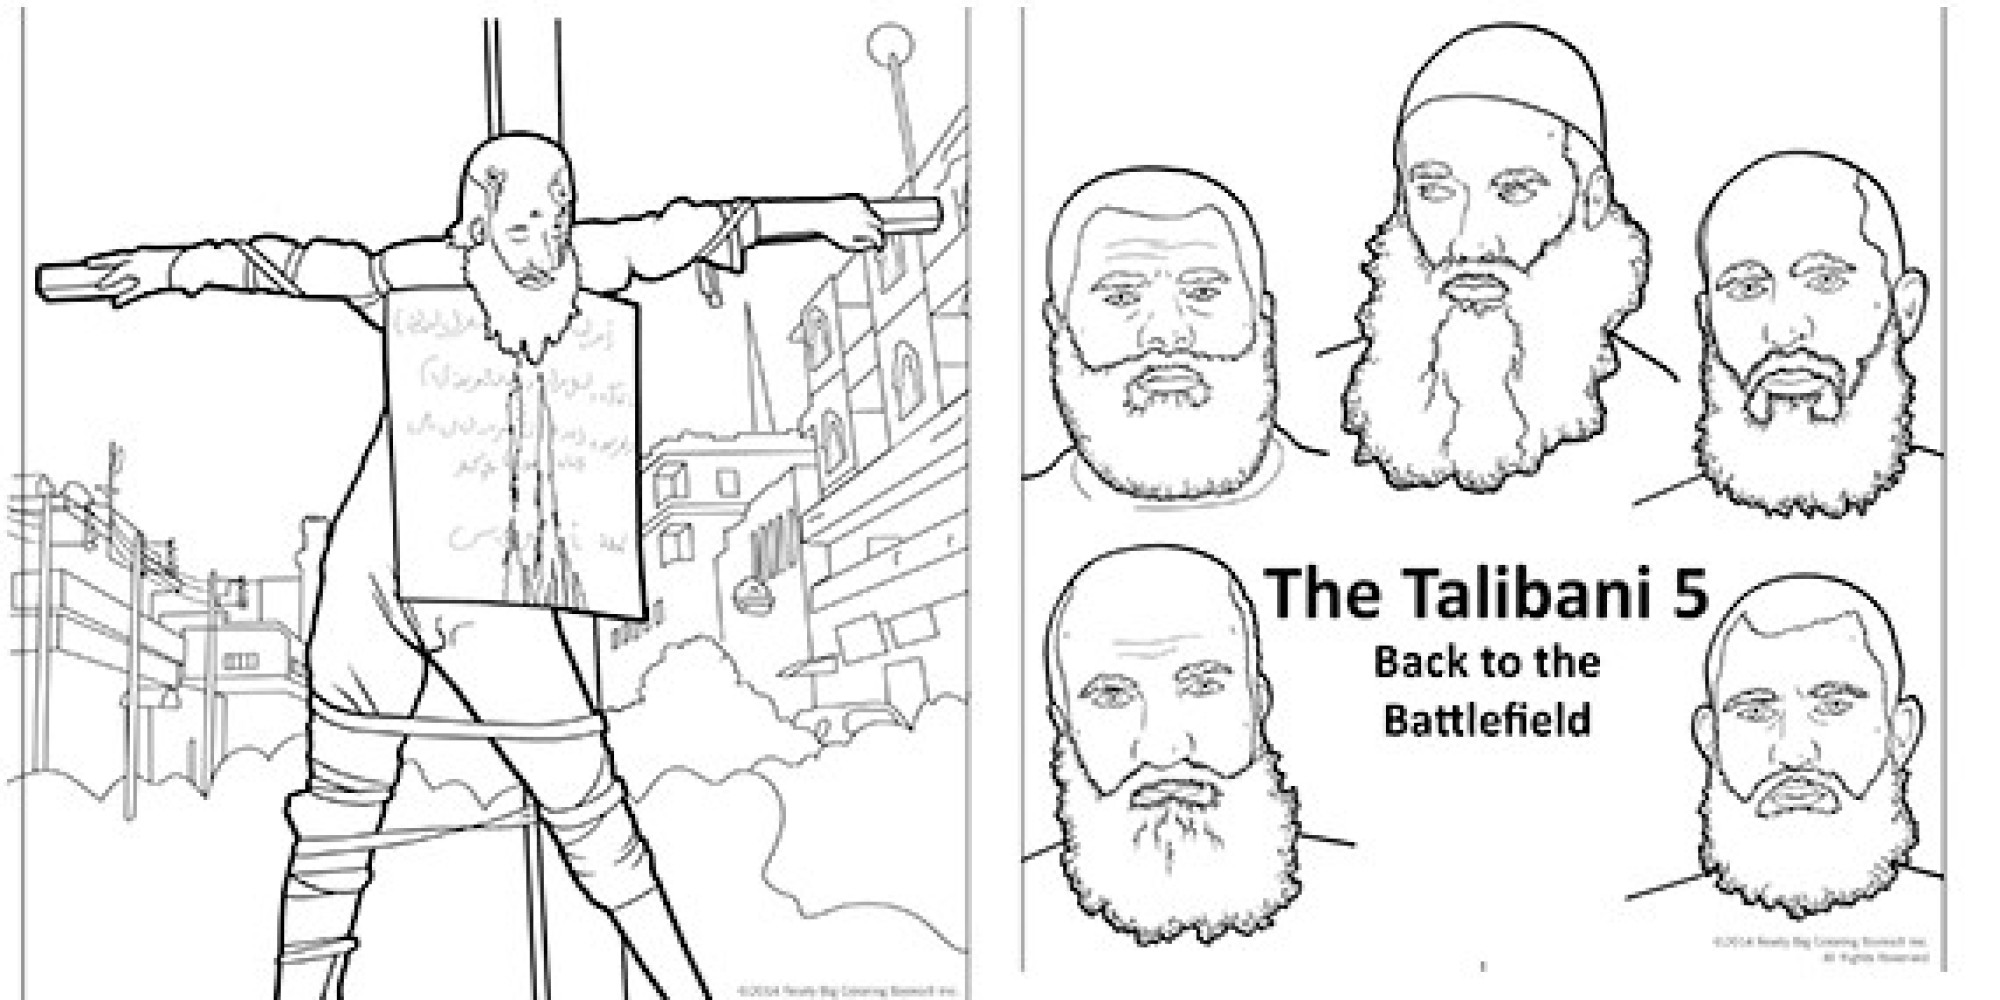 Graphic Anti-Terrorism Coloring Books Introduce Kids To ISIS | HuffPost